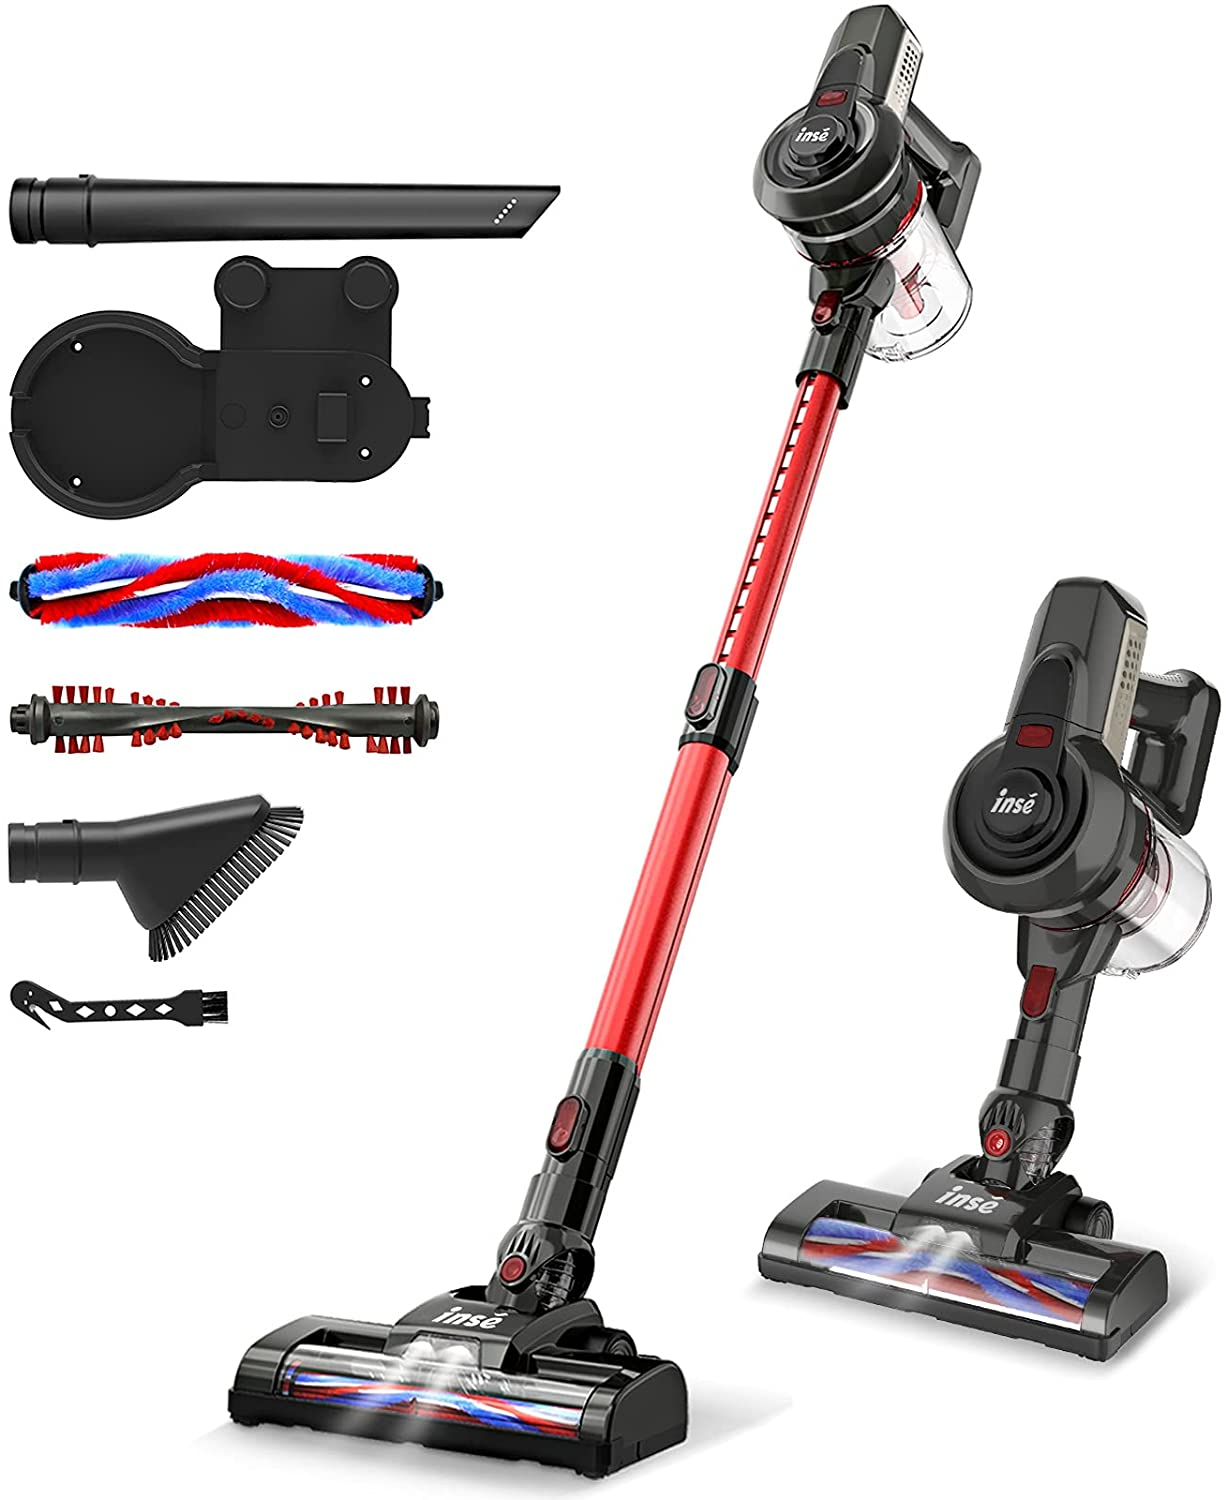 Max 65% OFF INSE Cordless Vacuum famous 12KPa Powerful with 160W Mo Cleaner